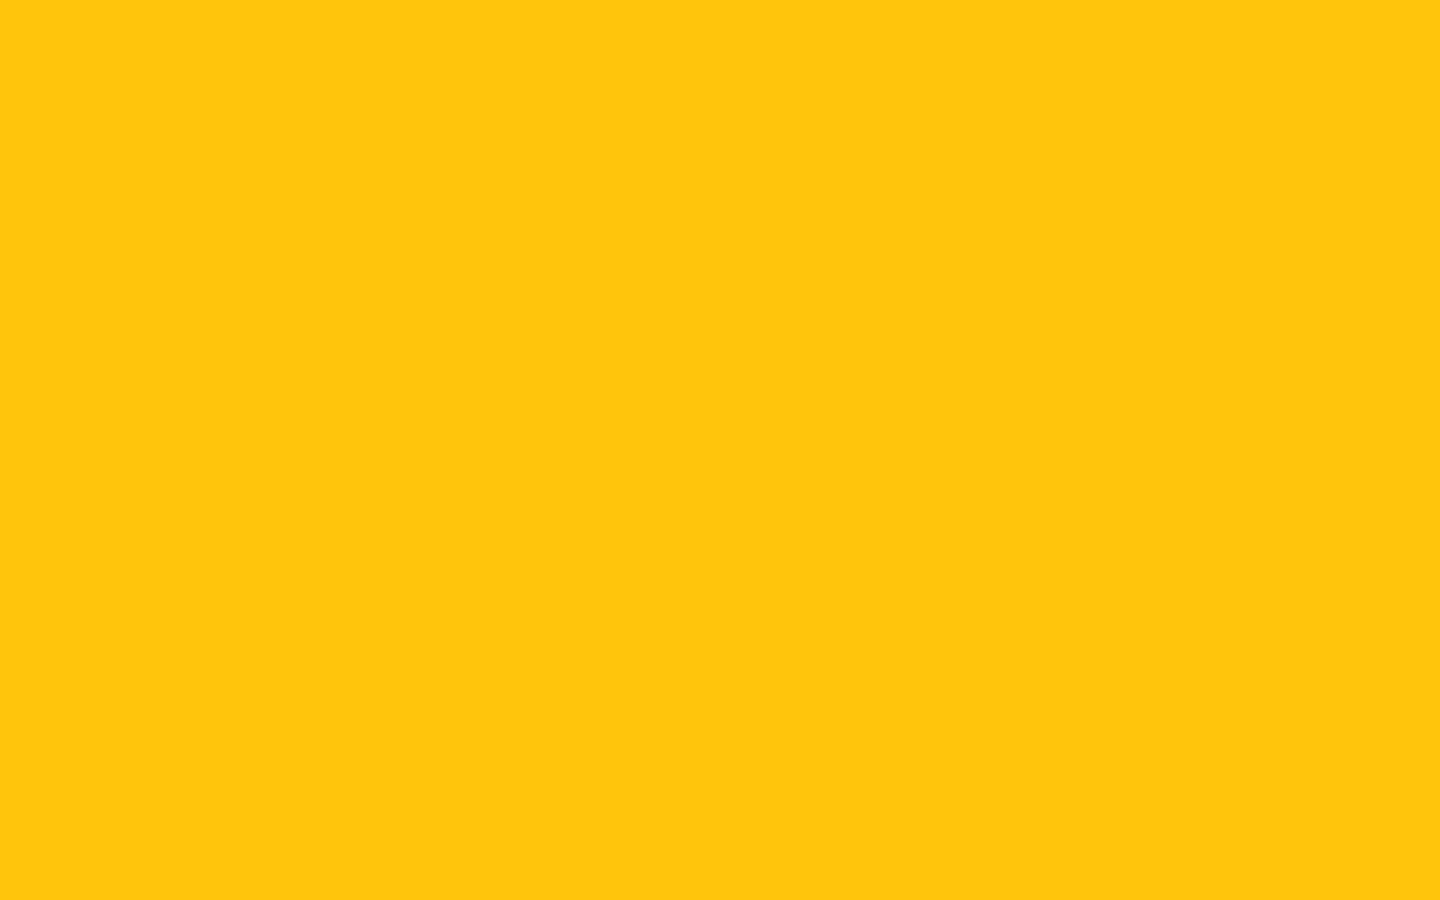 1440x900 Mikado Yellow Solid Color Background